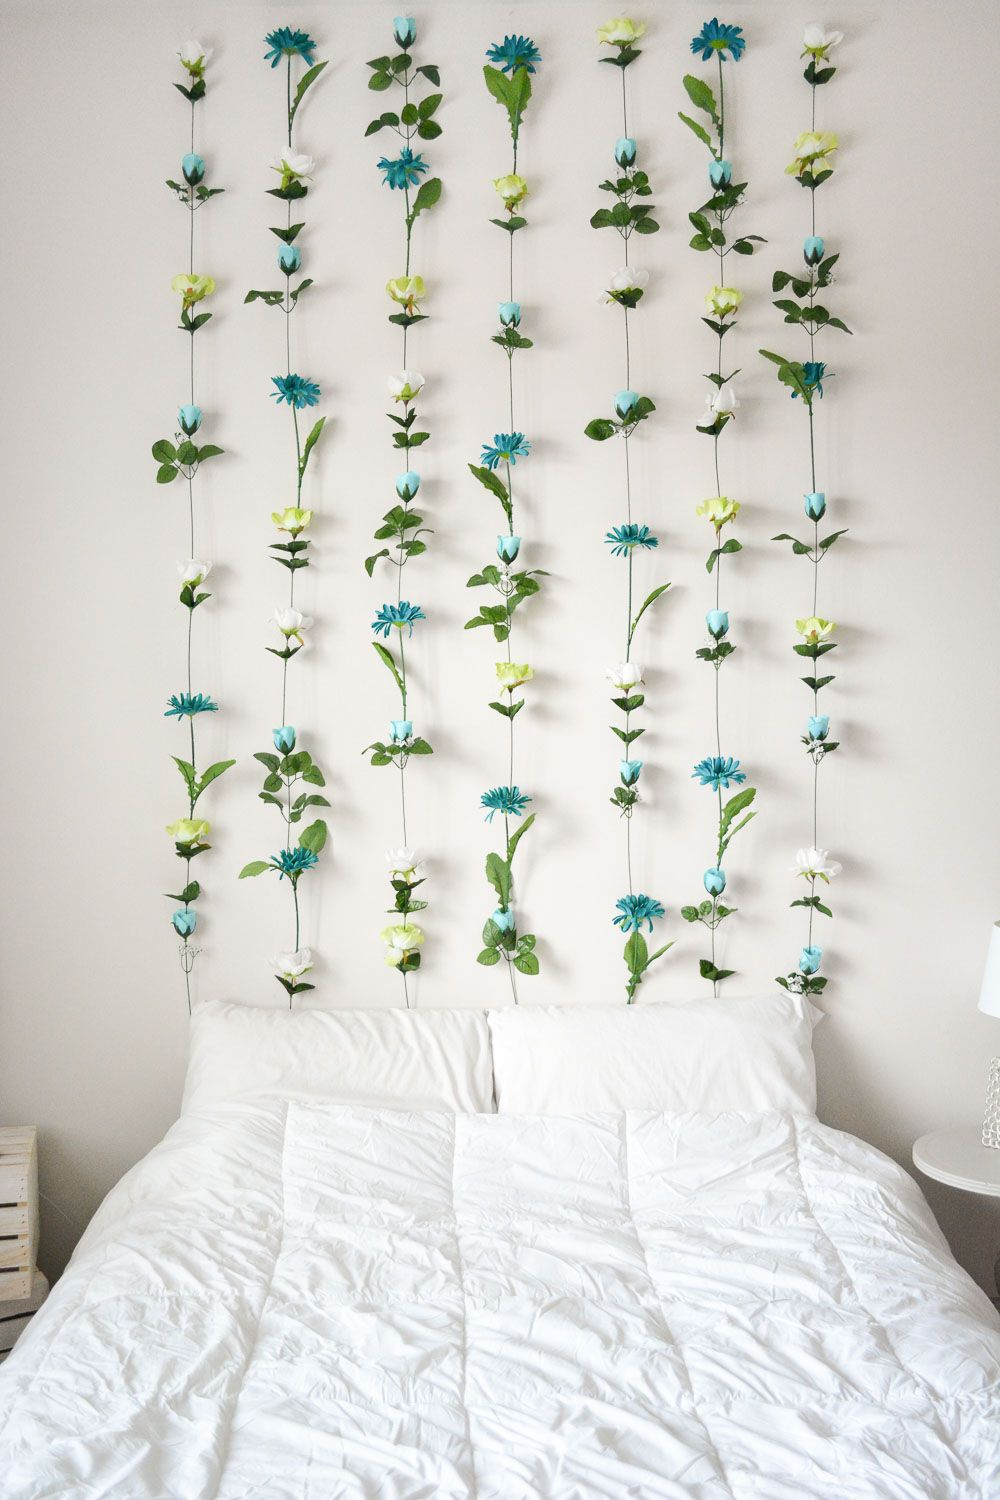 Charmant Bookmark This Bedroom Decor DIY Idea For A Flower Wall Headboard To  Brighten + Freshen Up Your Personal Space.